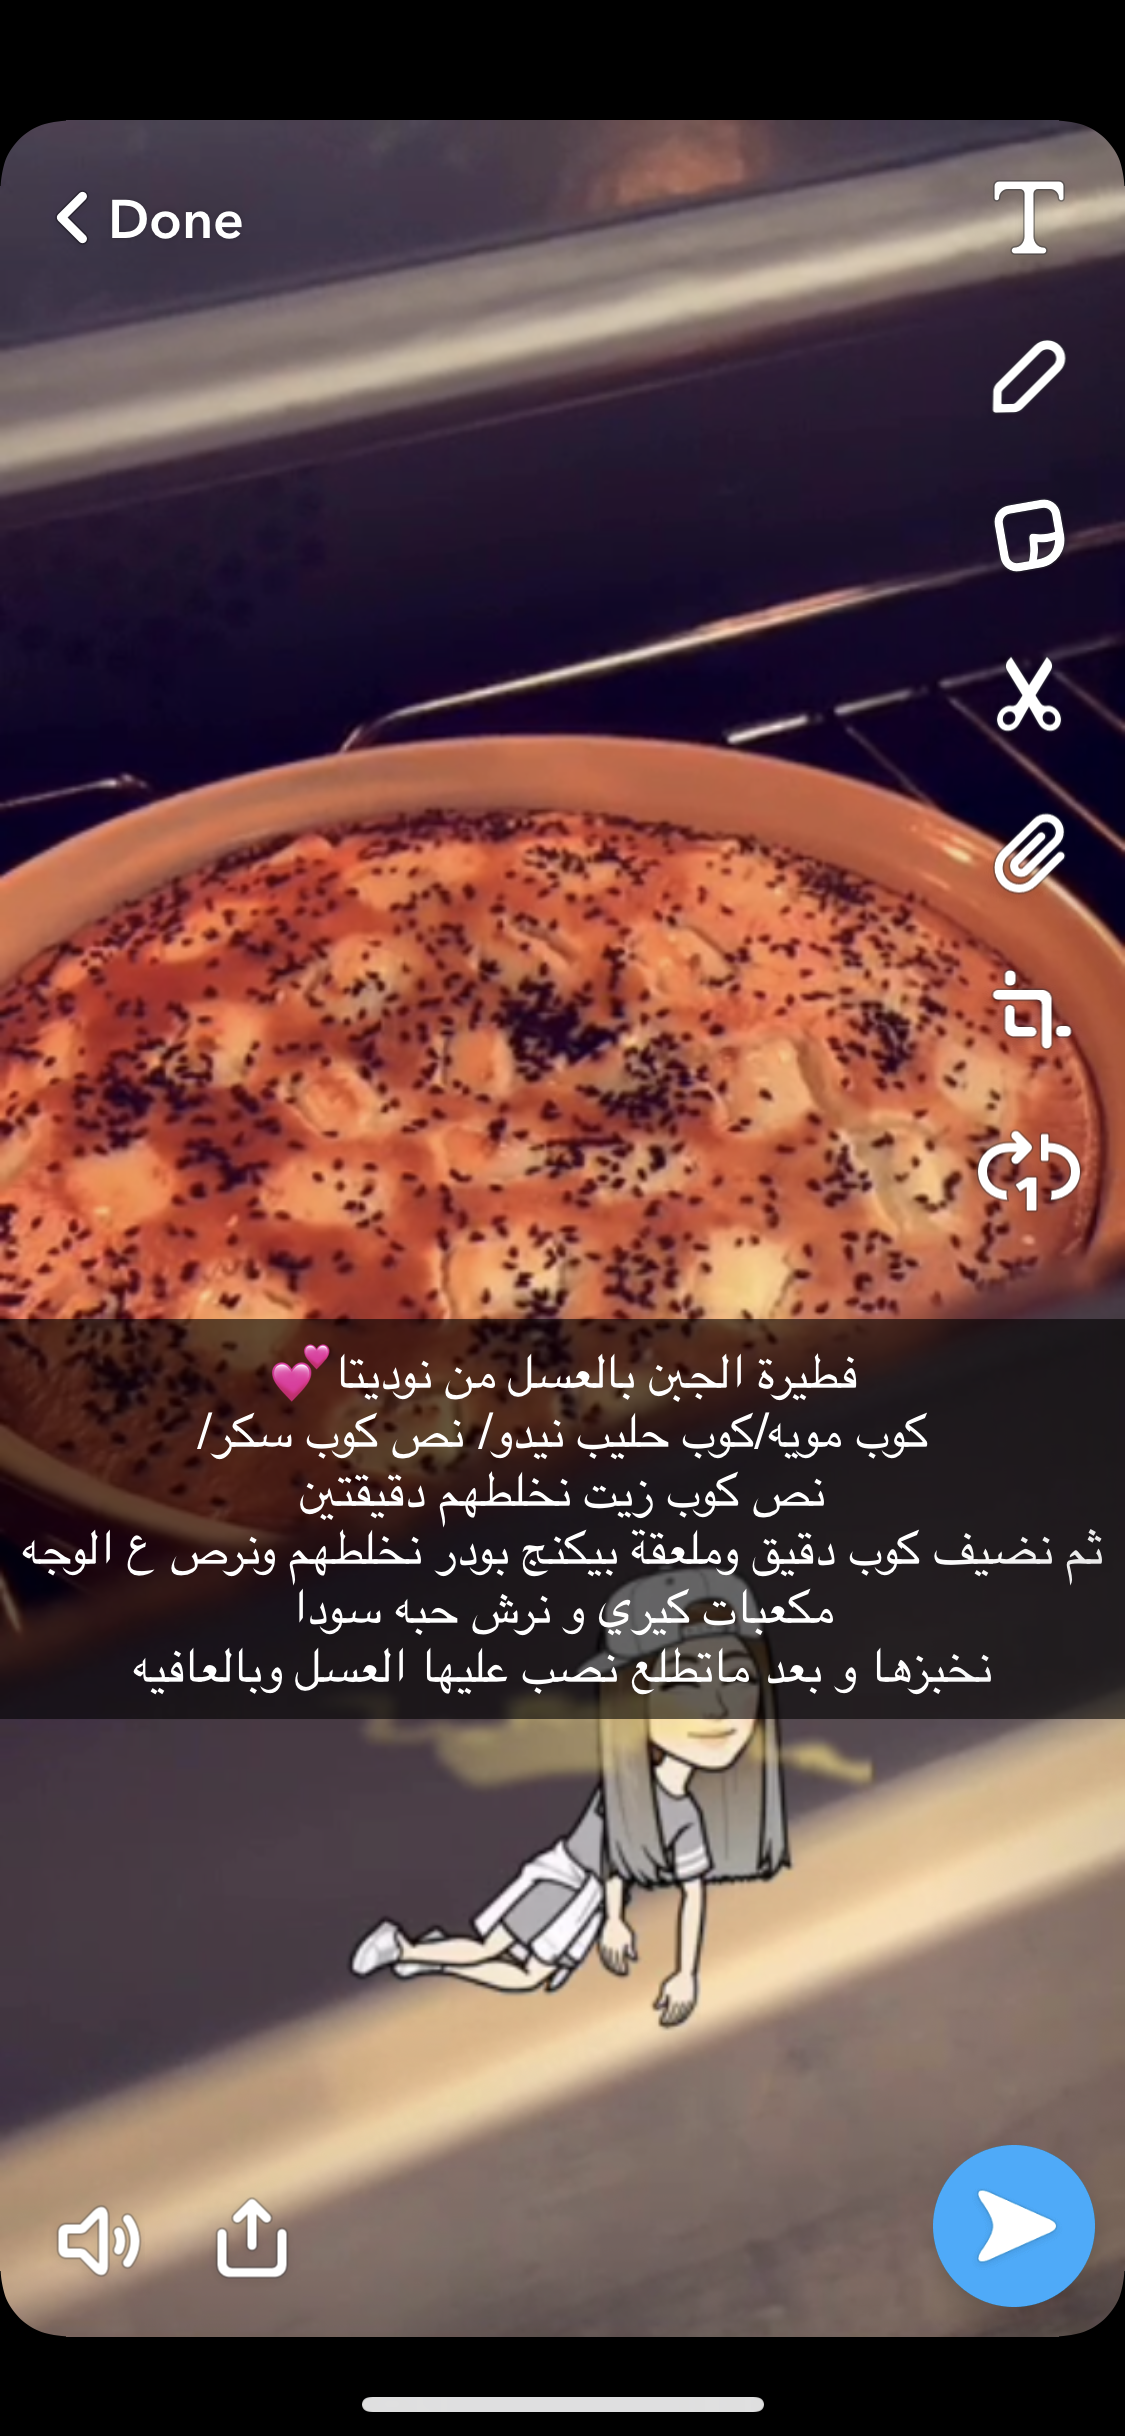 Pin By Rana Gohar On سناب نوديتا Cooking Recipes Recipes Cooking